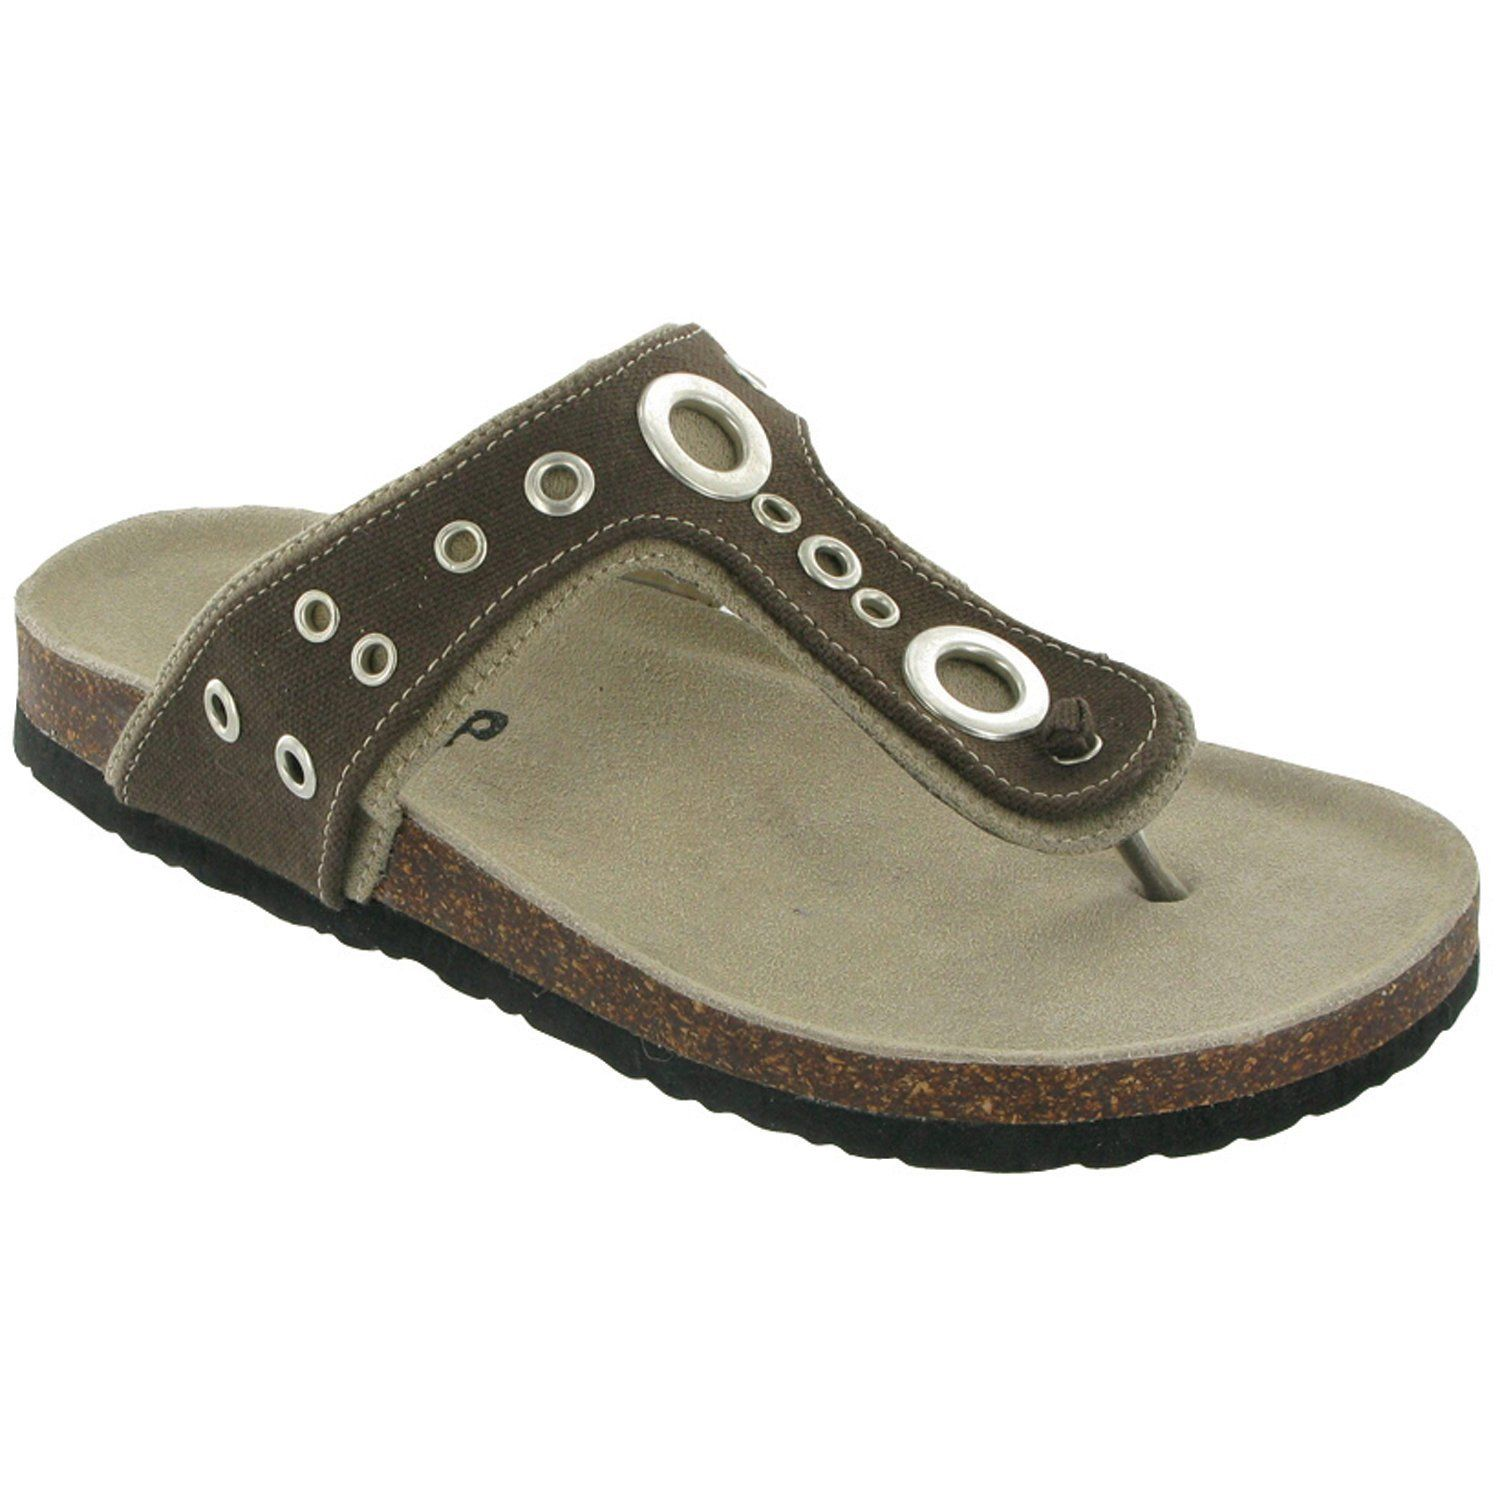 85b03fd9bbe9 Divaz Womens Sandals Camper Toe Post with Eyetes Design - Black   £18.99